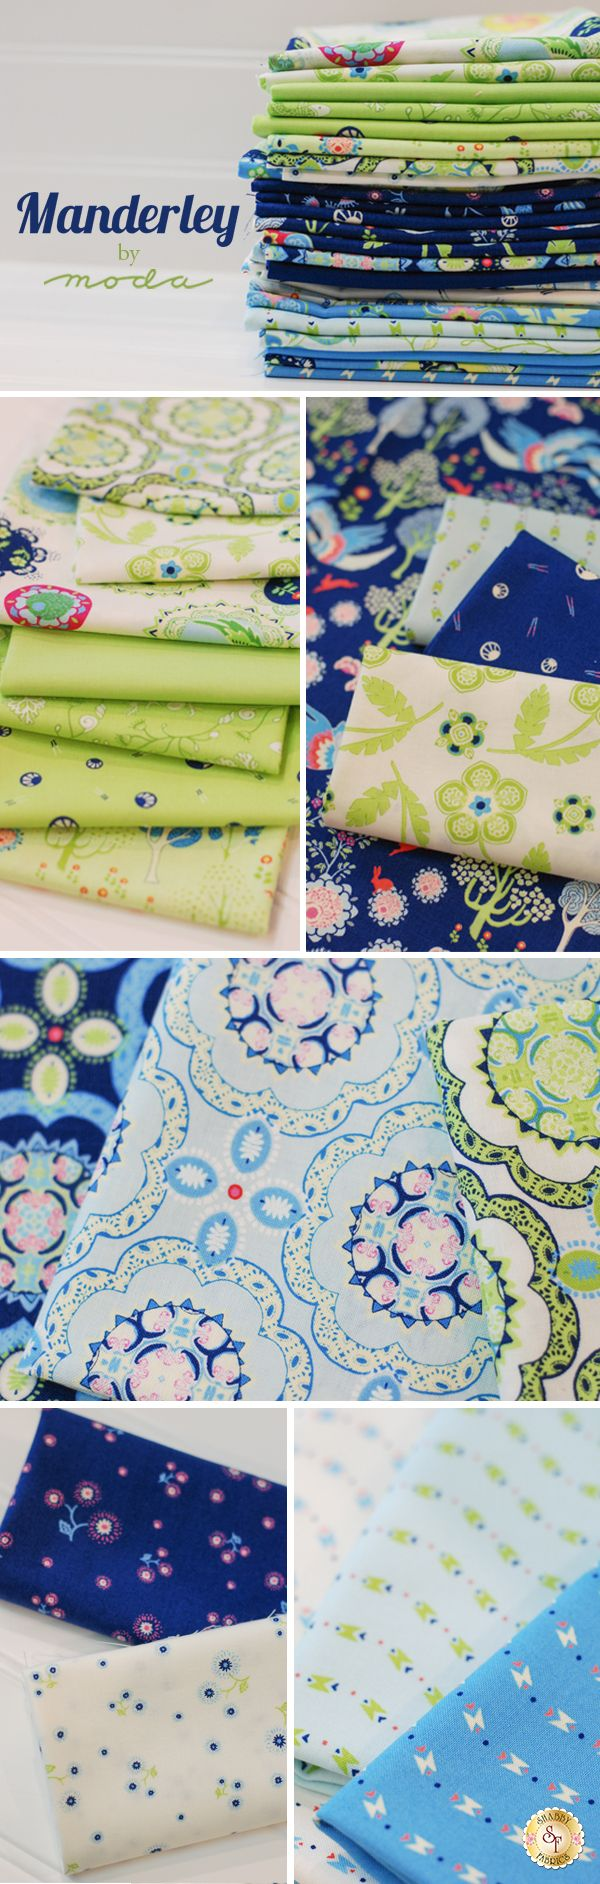 Manderley is a whimsical collection by Franny & Jane for Moda Fabrics available at Shabby Fabrics